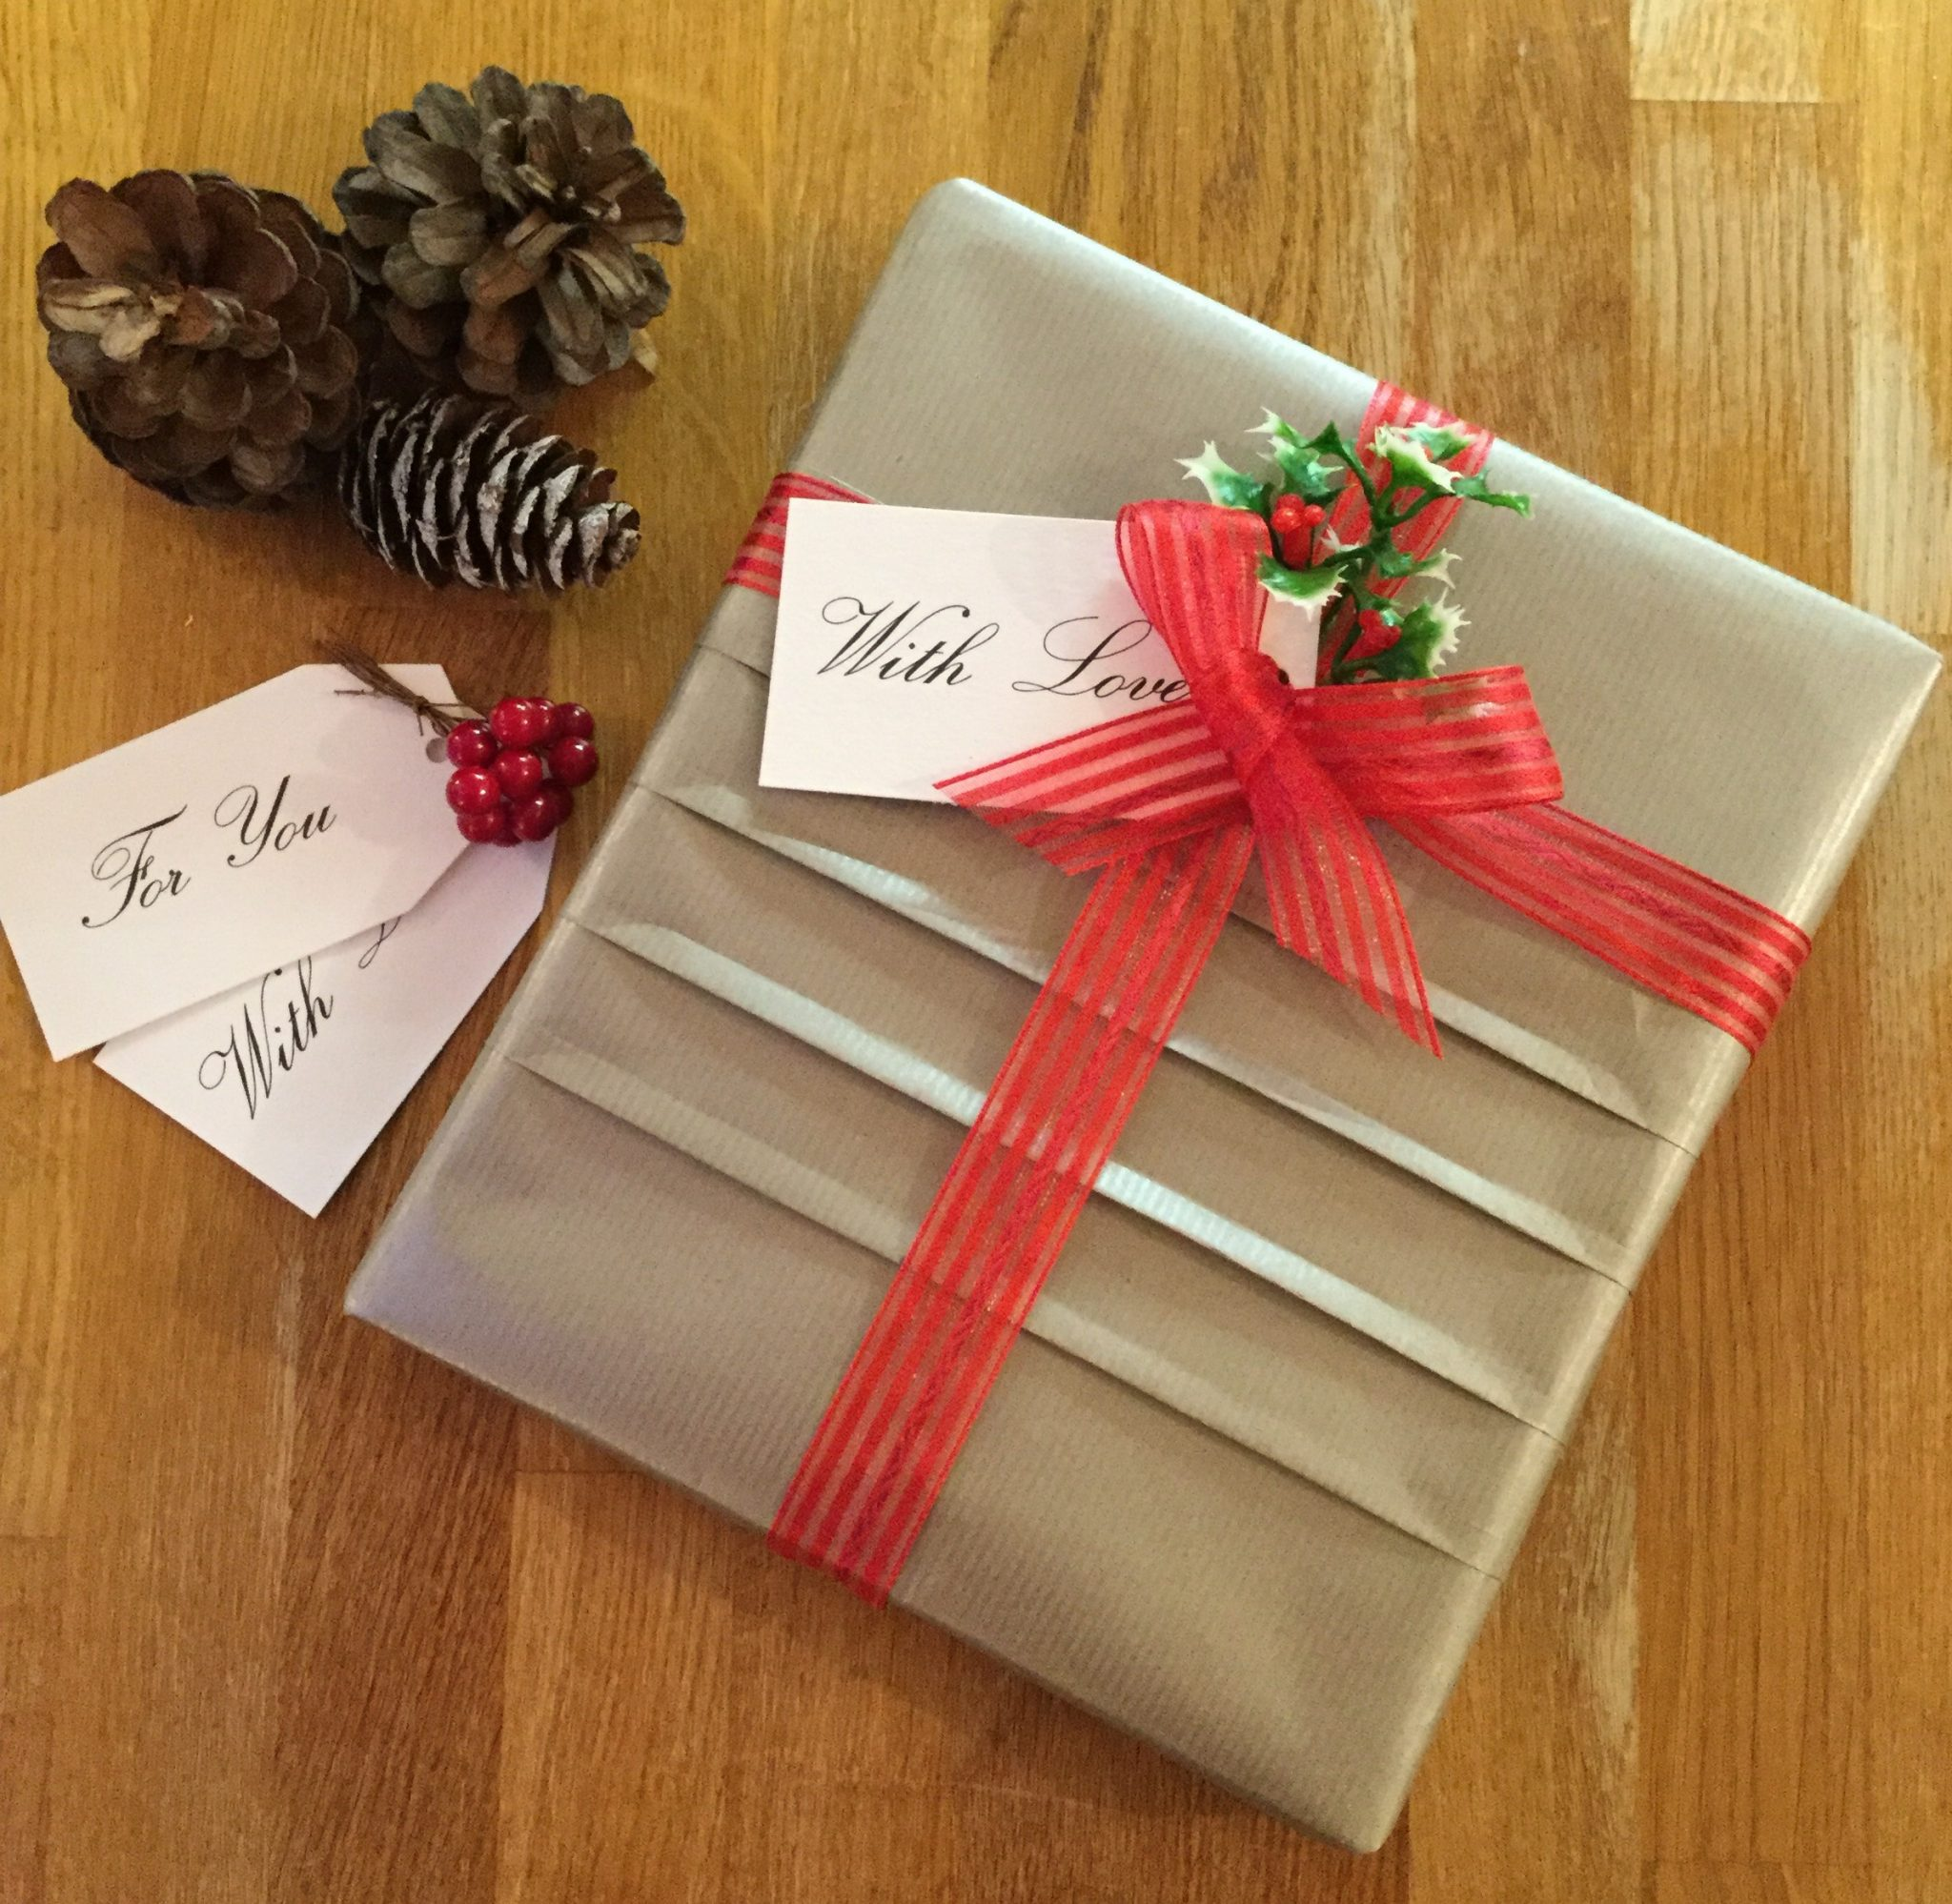 Giftwrapped parcel with pleats in the paper